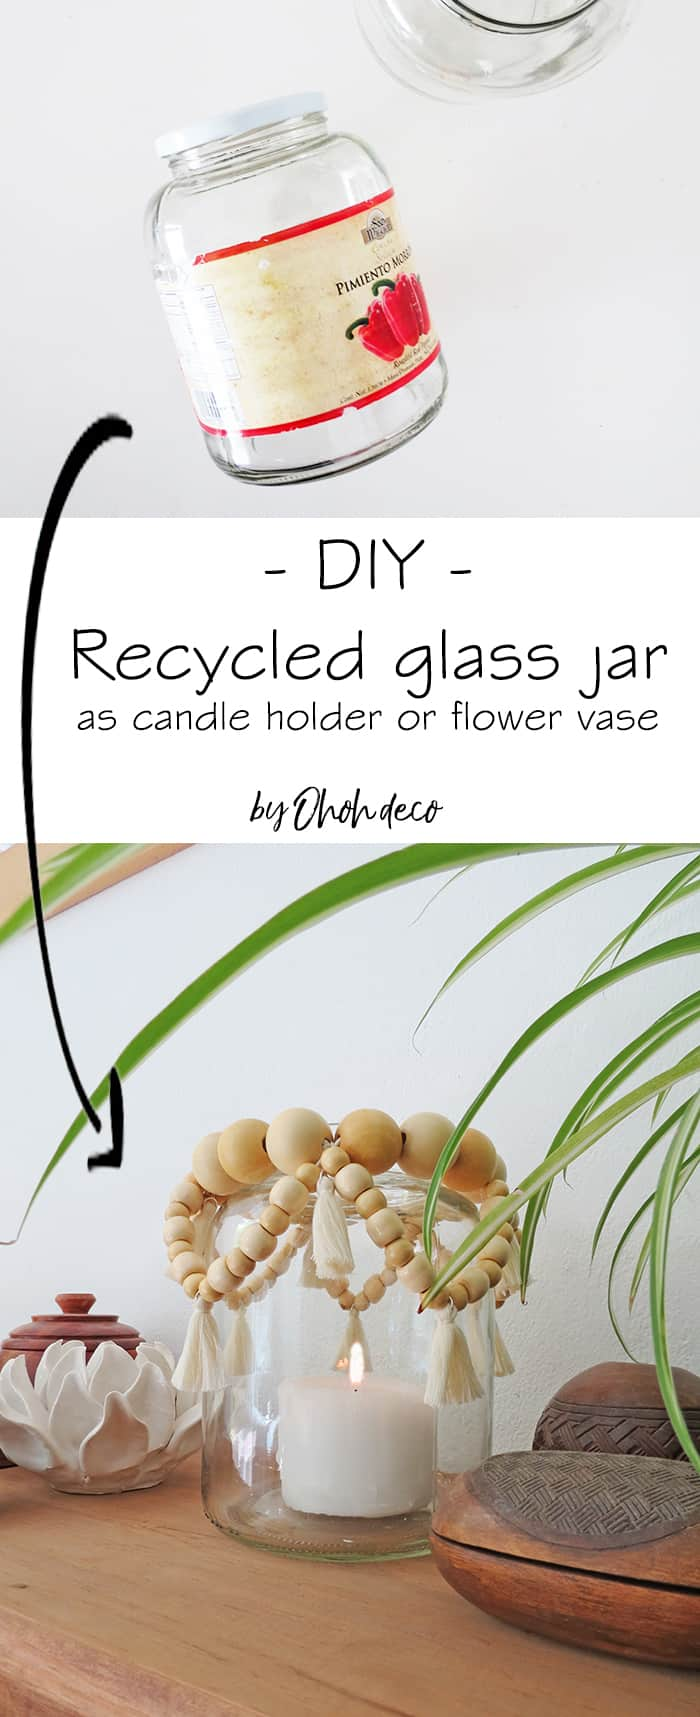 Recycled glass jar as flower vase